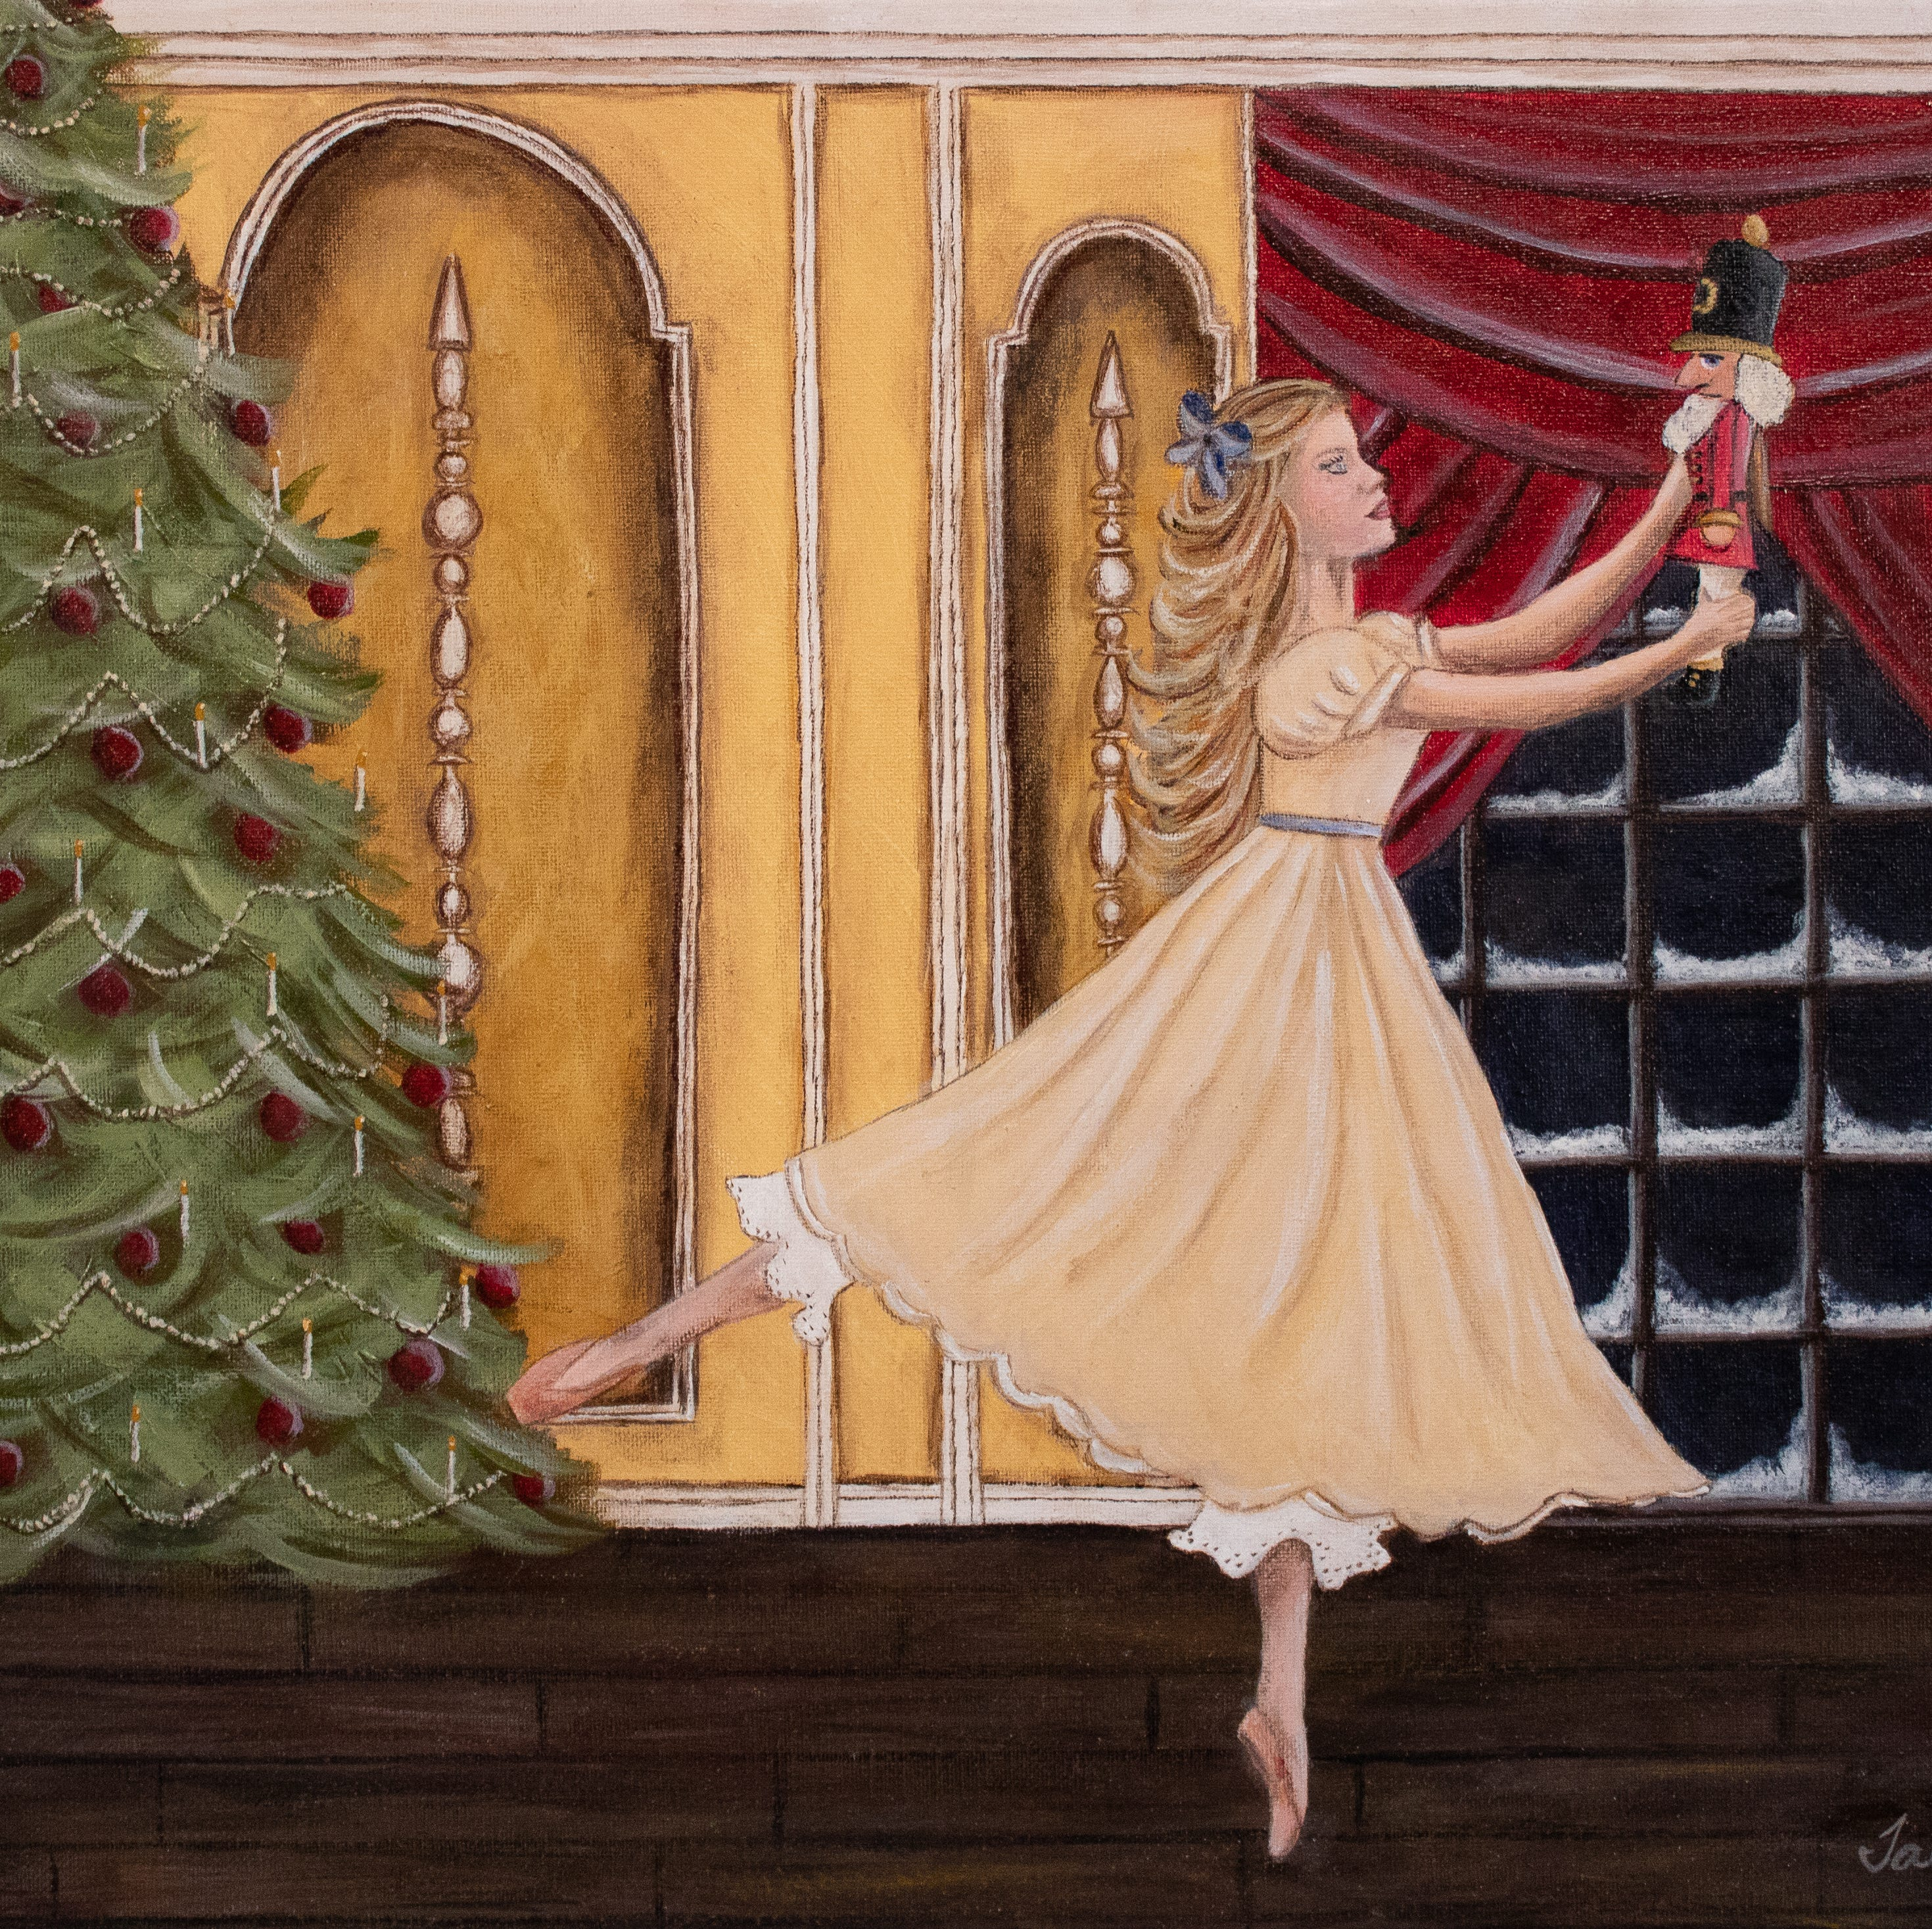 Magical journey continues for 'The Great Montgomery Nutcracker'